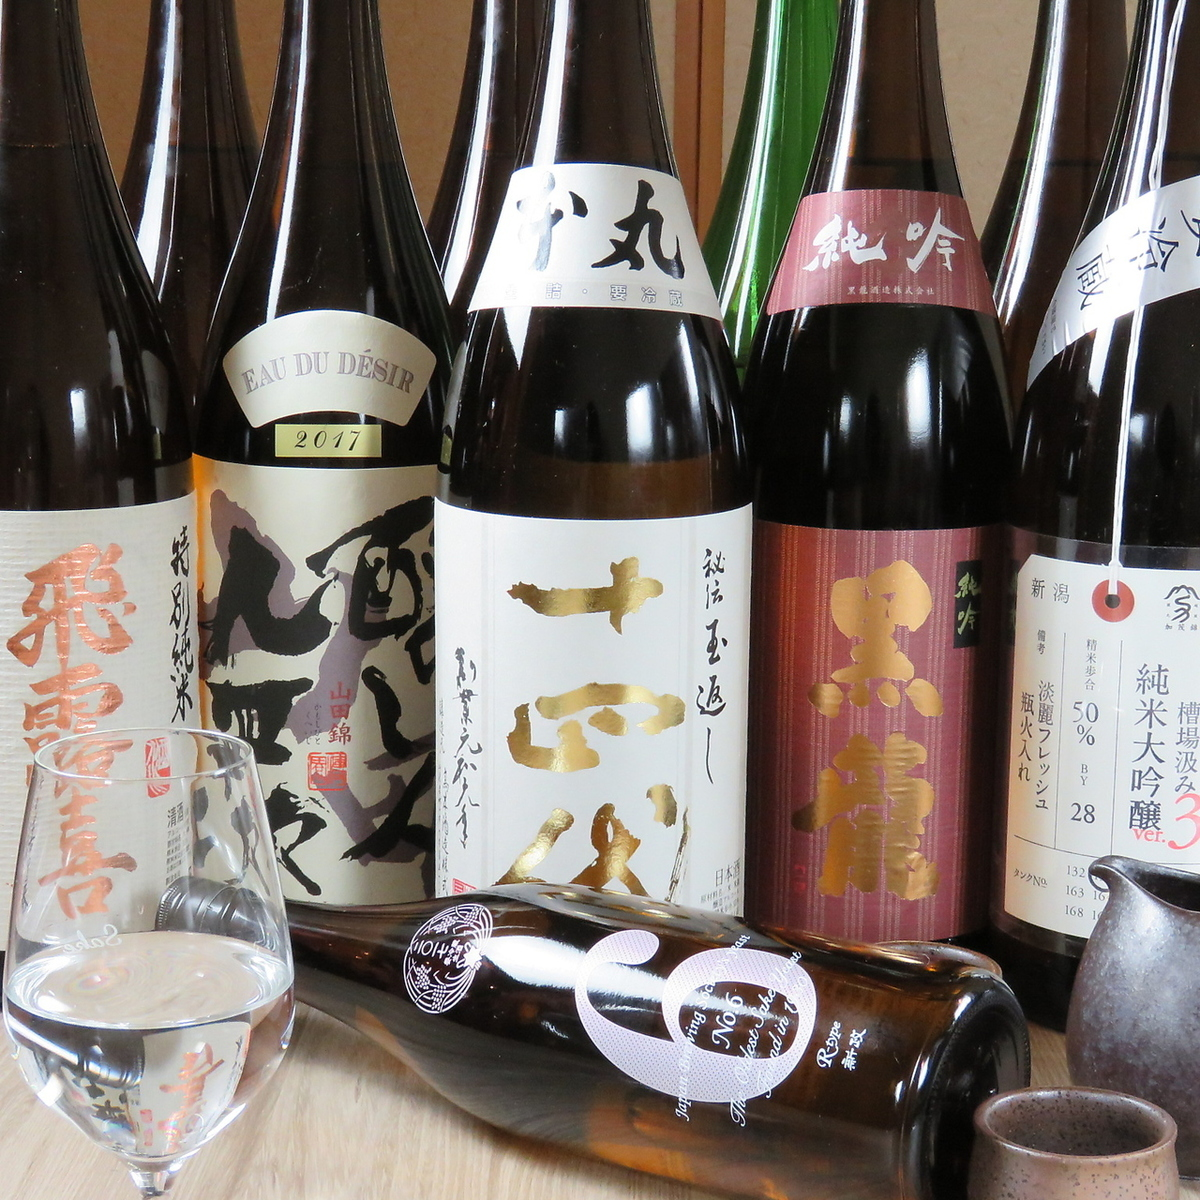 Apart from sake, there are many types of drinks available.